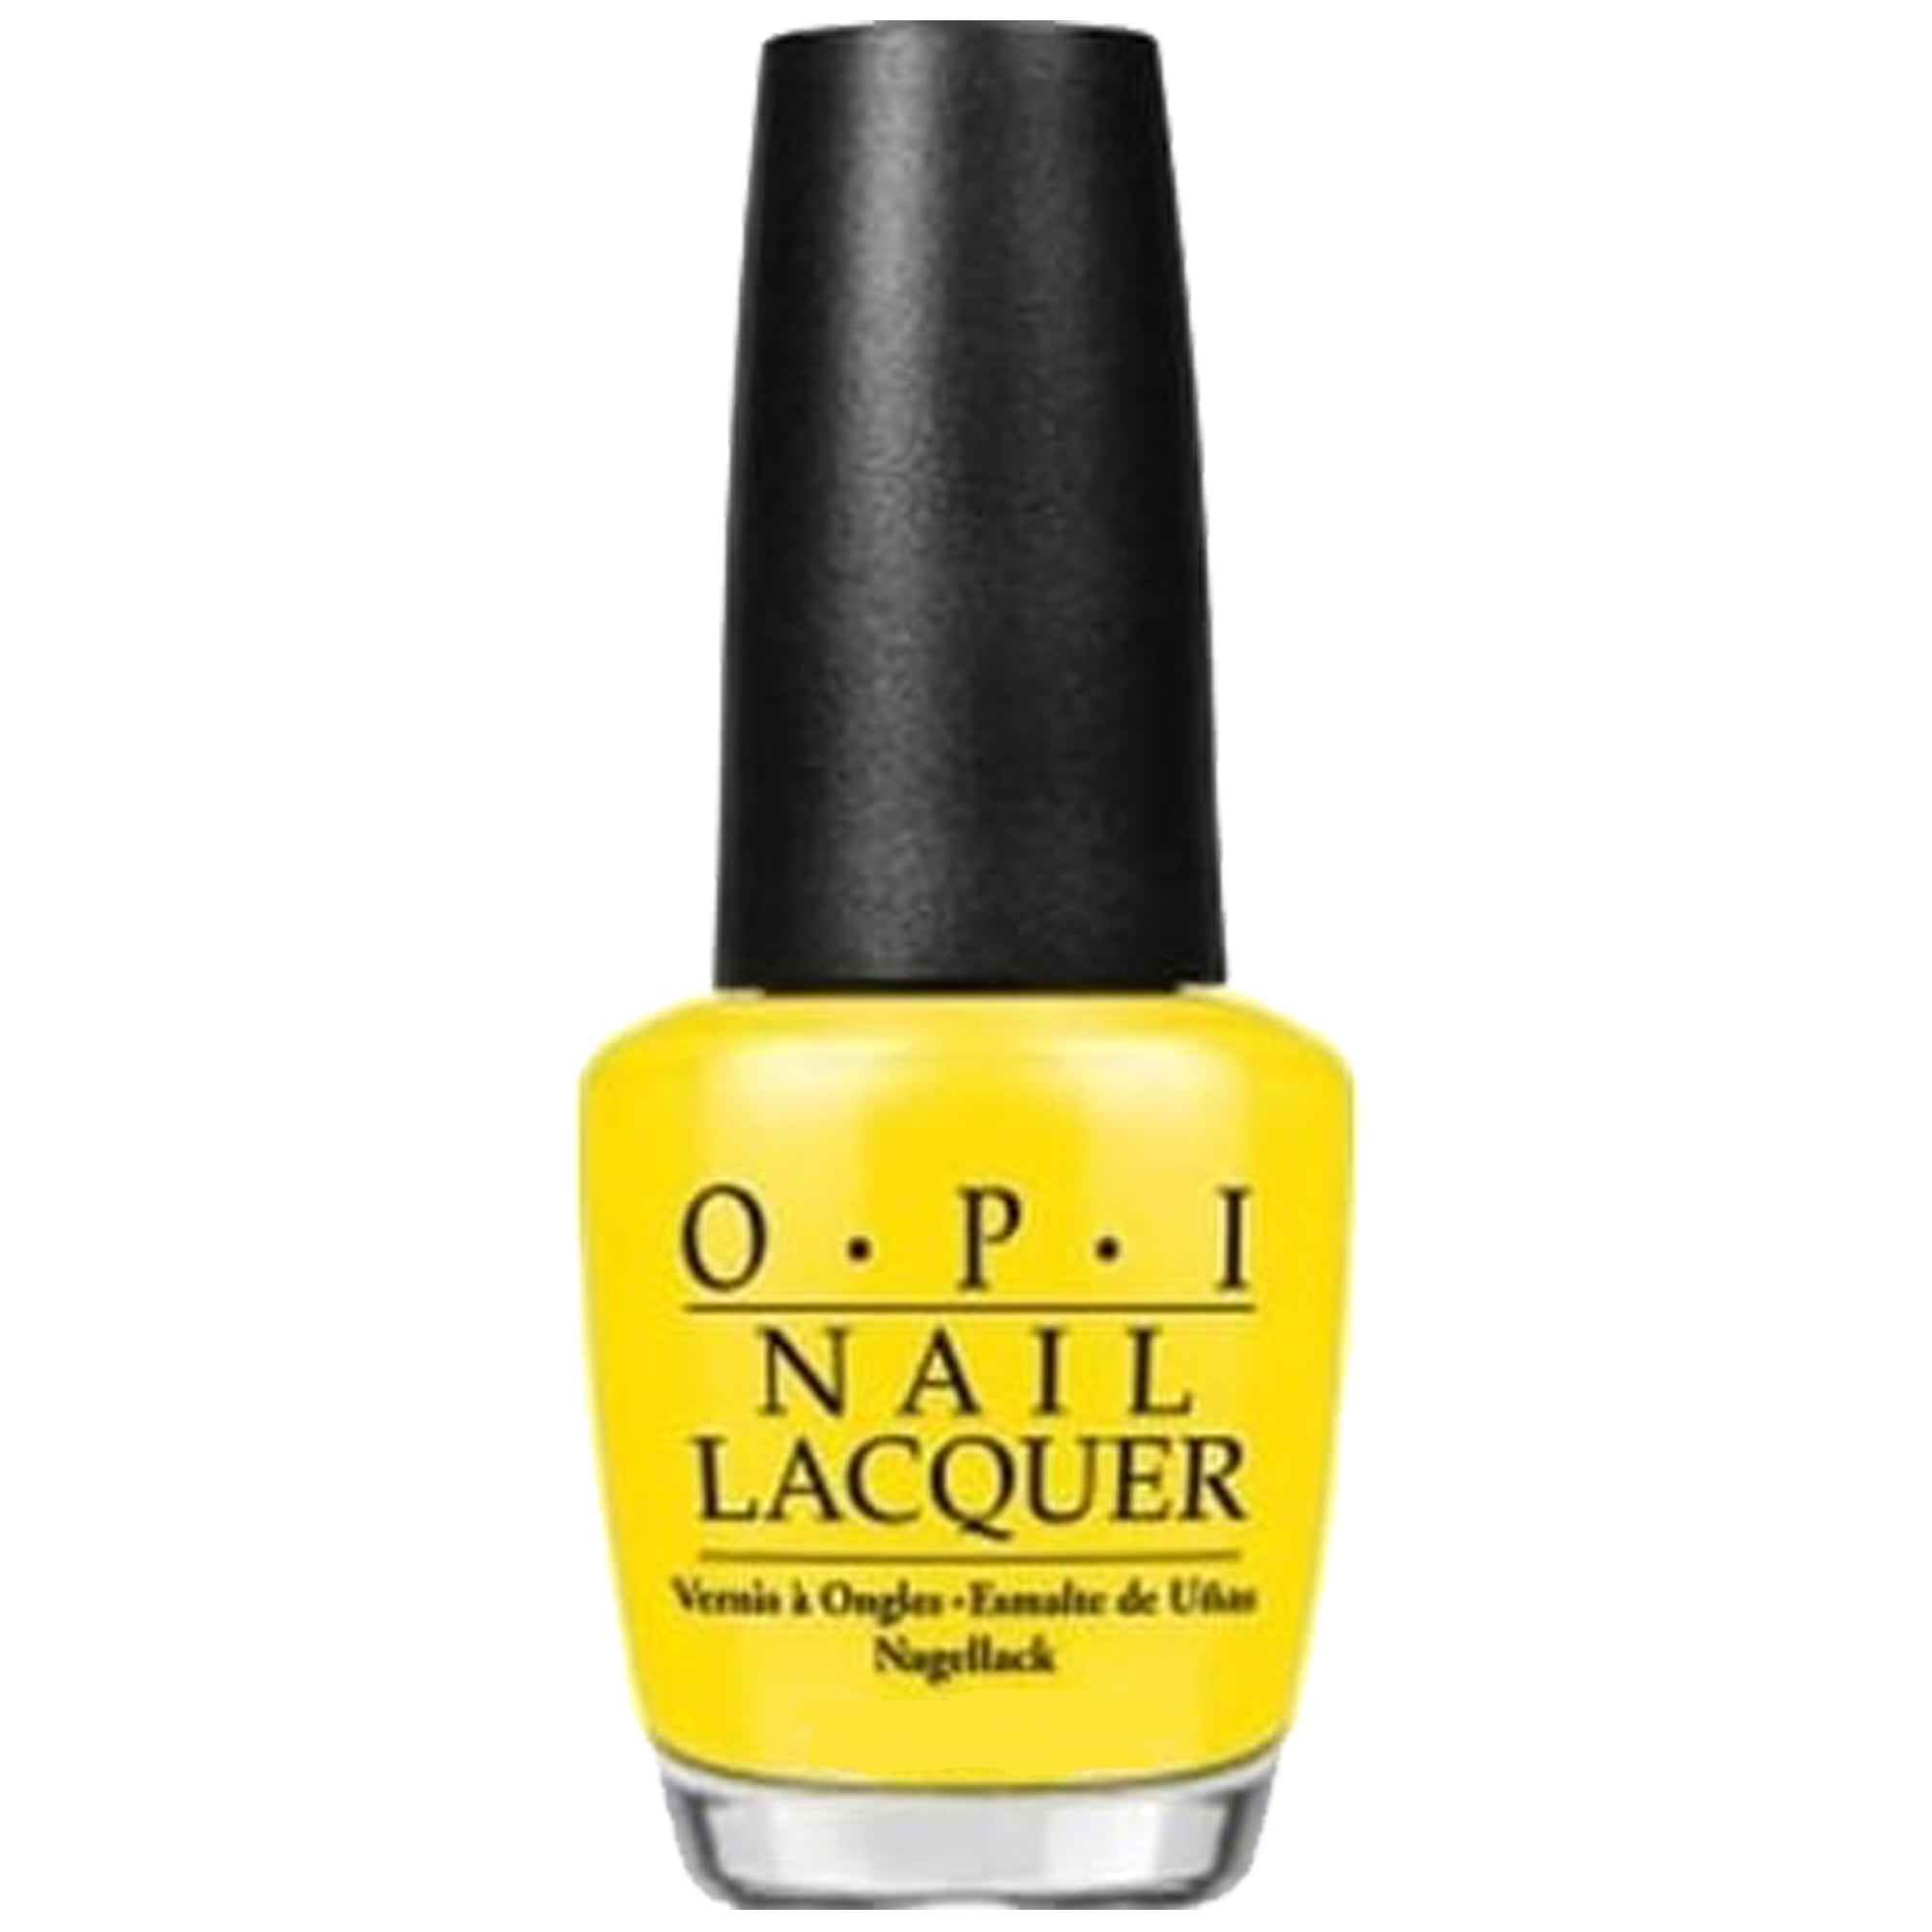 Yellow Nail Polish in OPI, Jessica, China Glaze, Essie & CND Vinylux